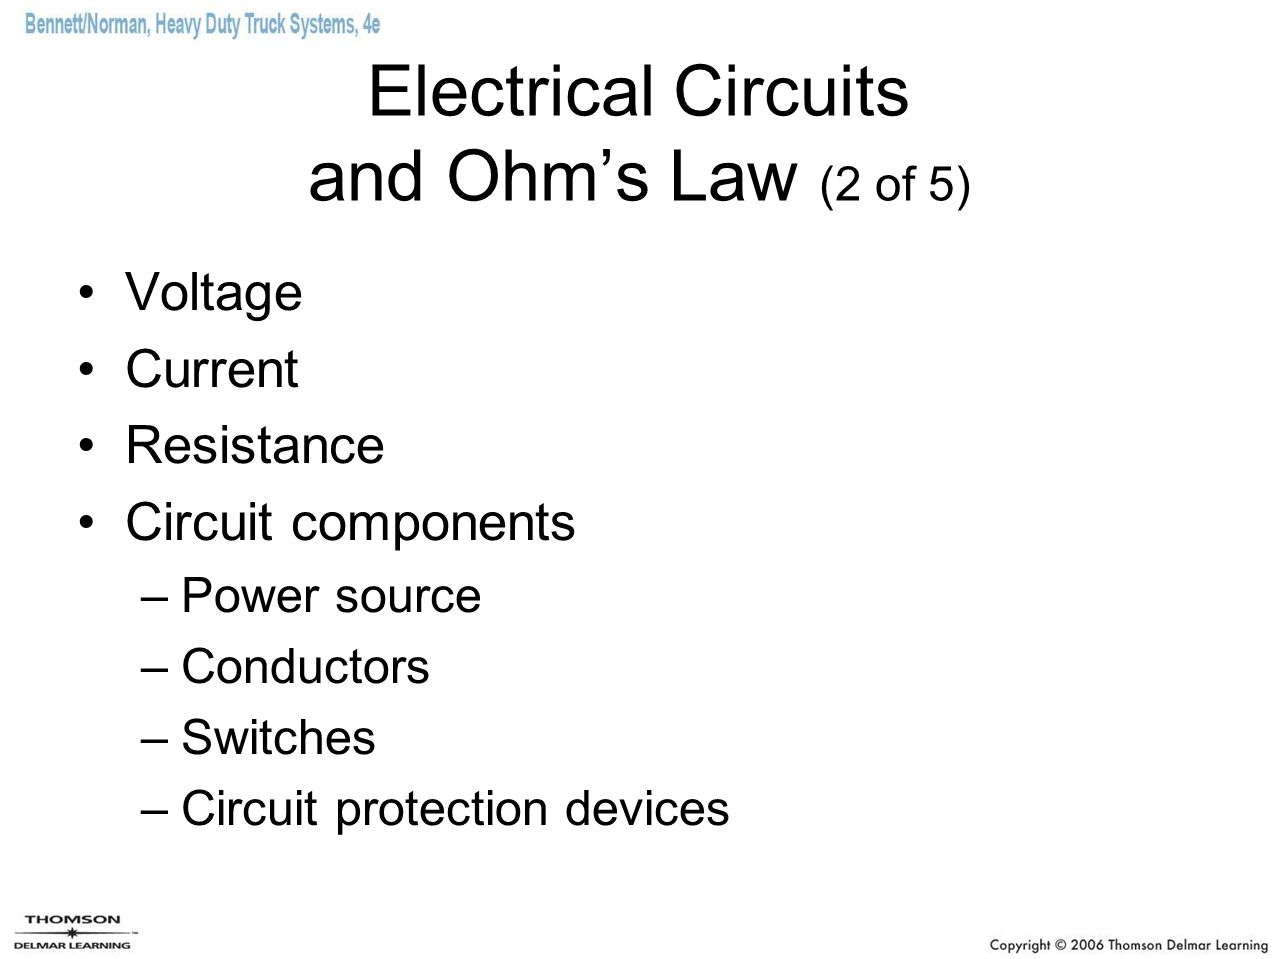 Electrical Circuits and Ohm's Law (2 of 5) Voltage Current Resistance Circuit components –Power source –Conductors –Switches –Circuit protection devices